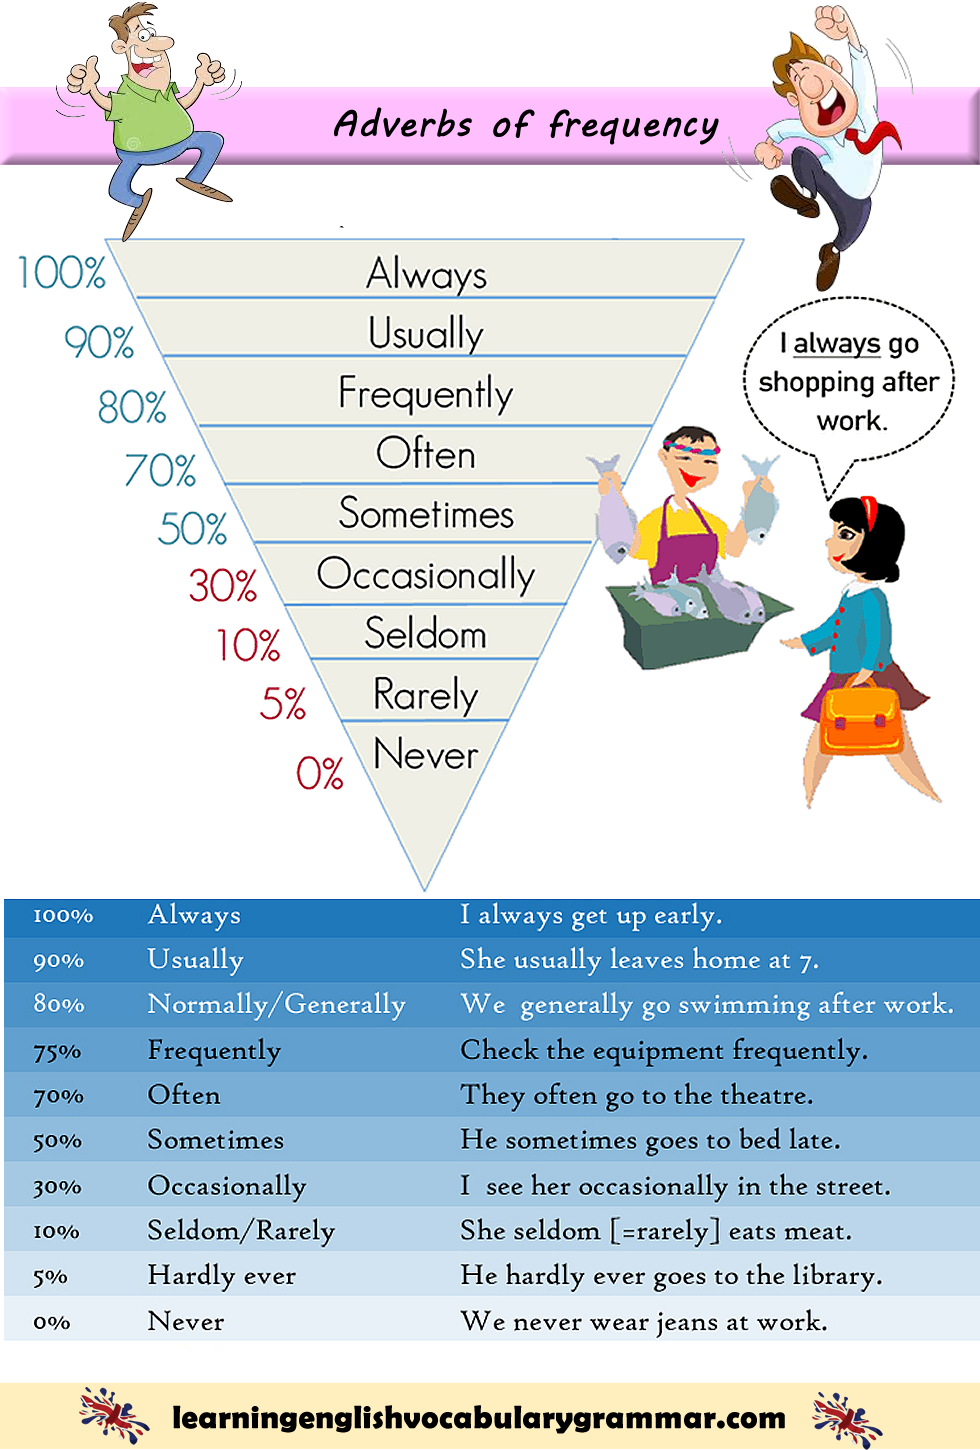 List Of Adverbs Of Frequency With Examples And Meanings Learning English Grammar Apprendre L Anglais Vocabulaire Anglais Anglais [ 1450 x 980 Pixel ]